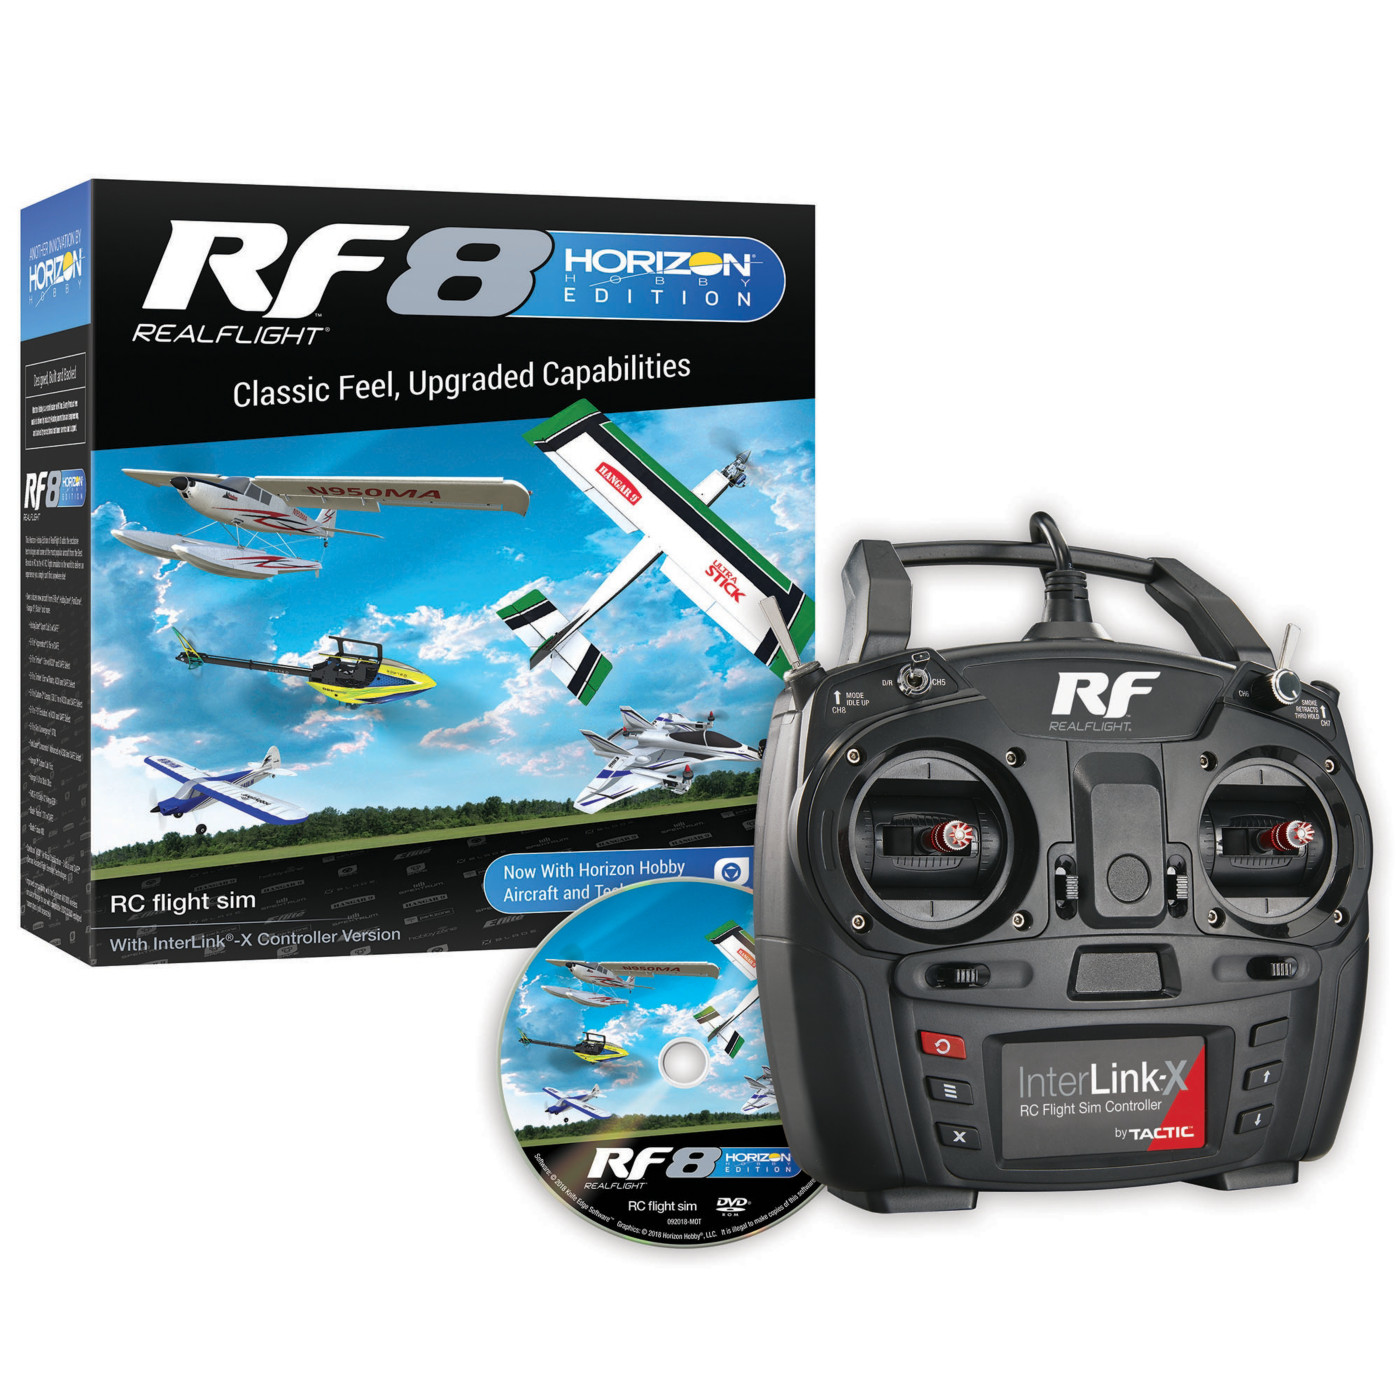 RealFlight RF8 Horizon Hobby Edition